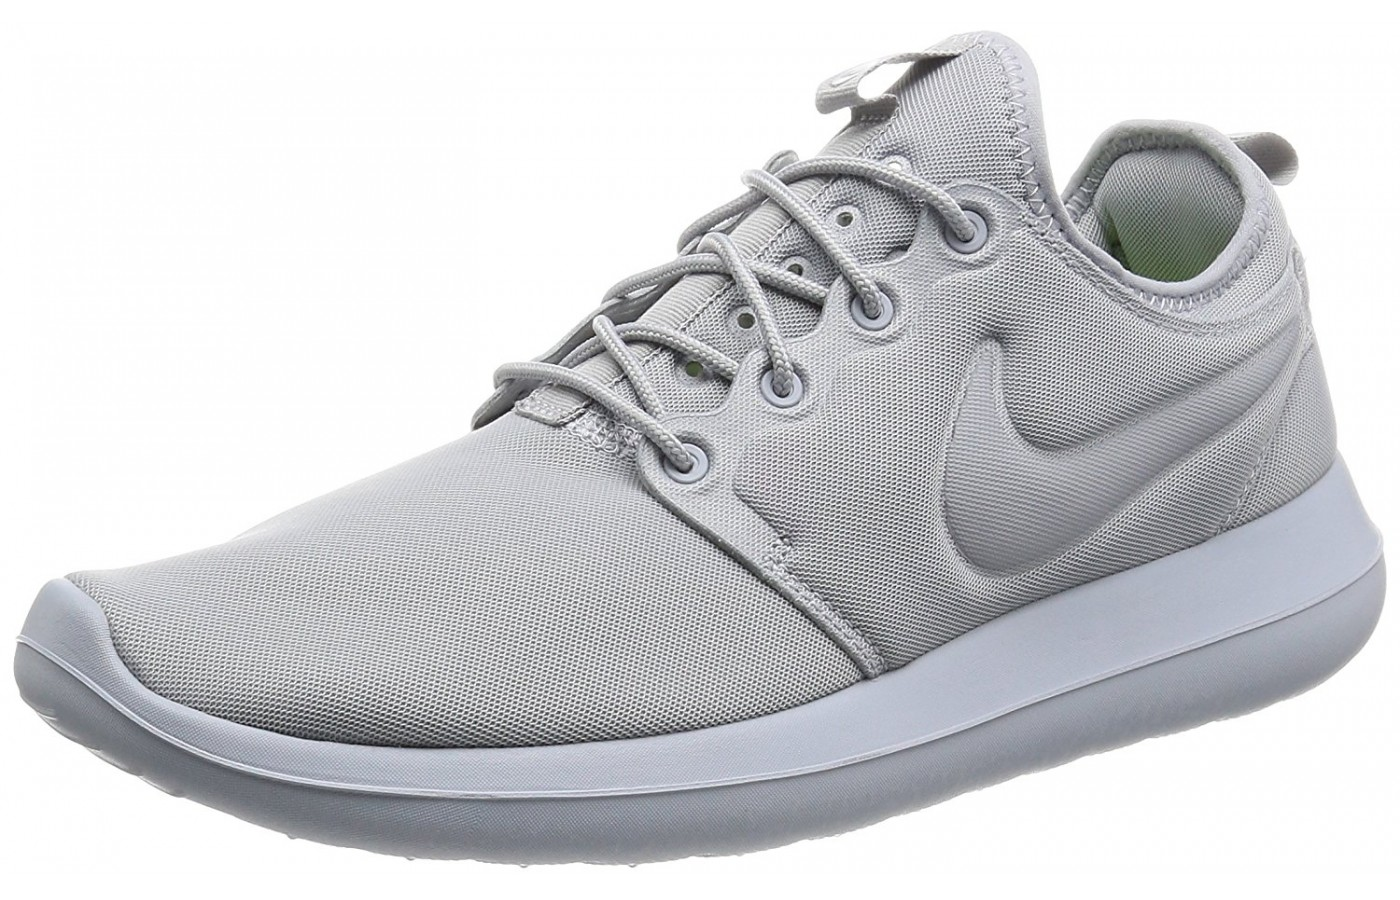 c02660c5f21e3 A three quarter view of the Nike Roshe 2 running shoe ...